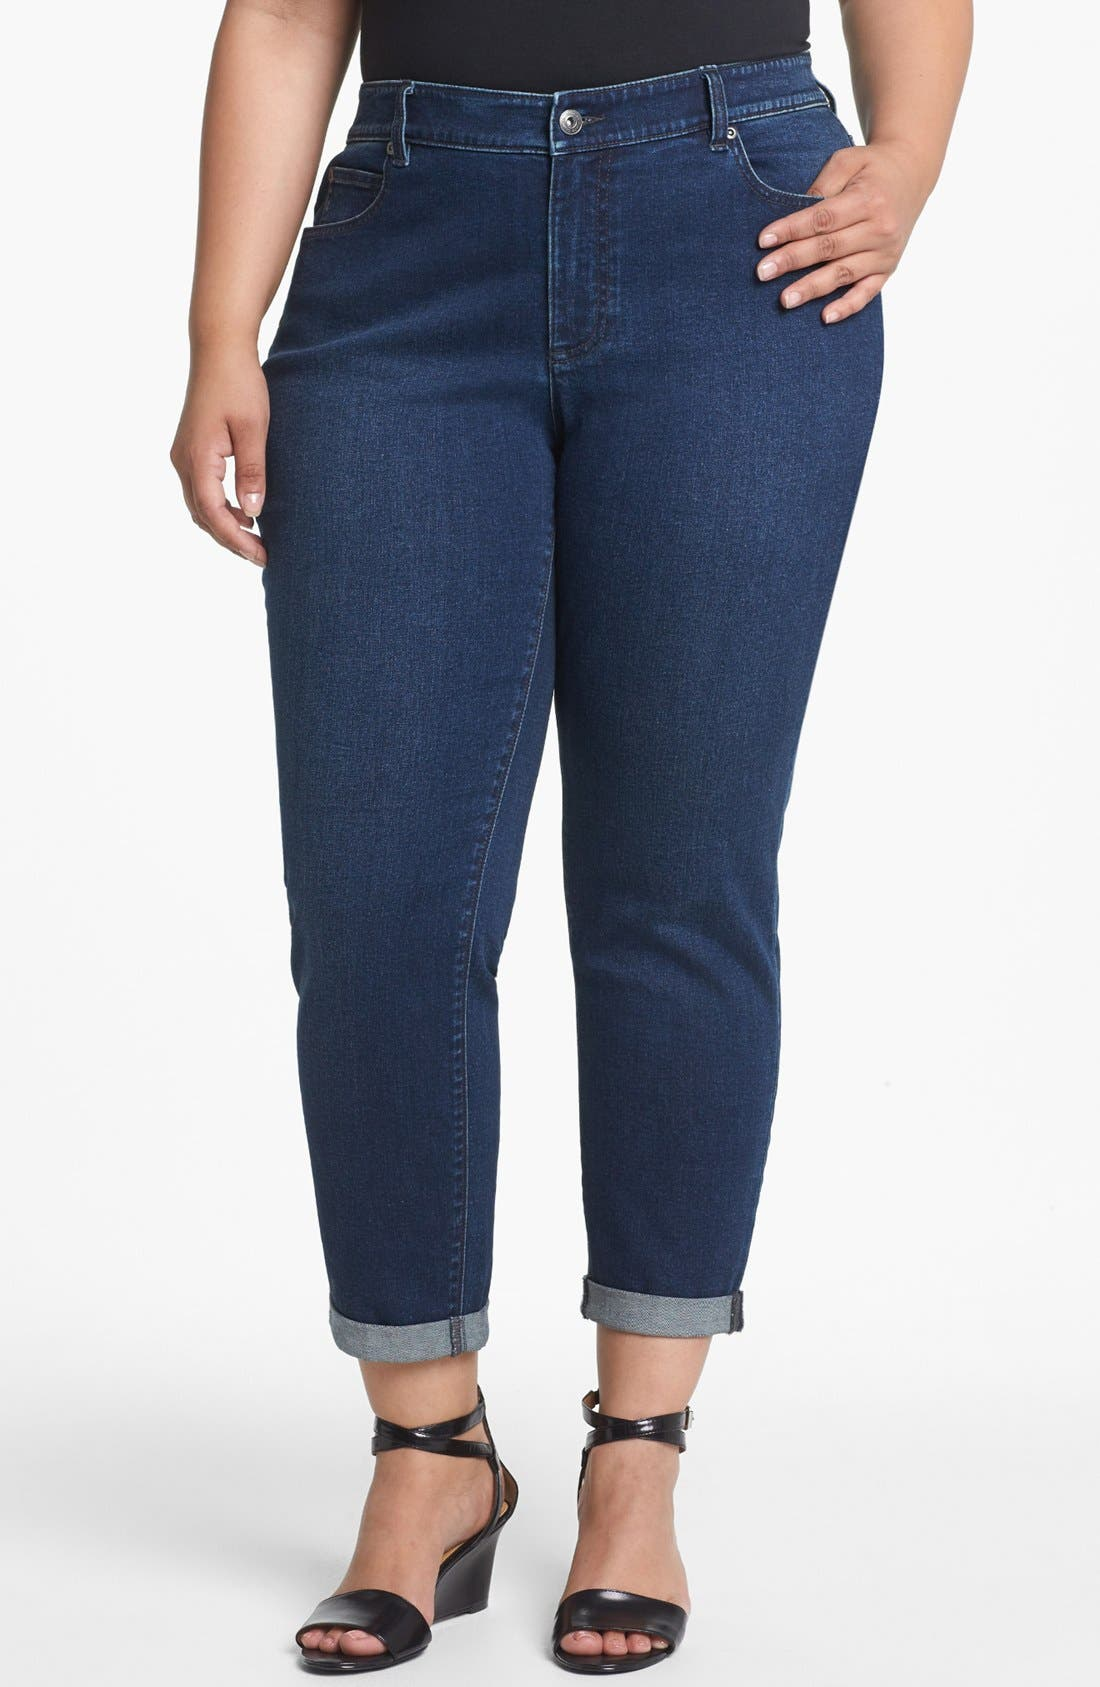 Main Image - Two by Vince Camuto Cuff Crop Jeans (Plus Size)